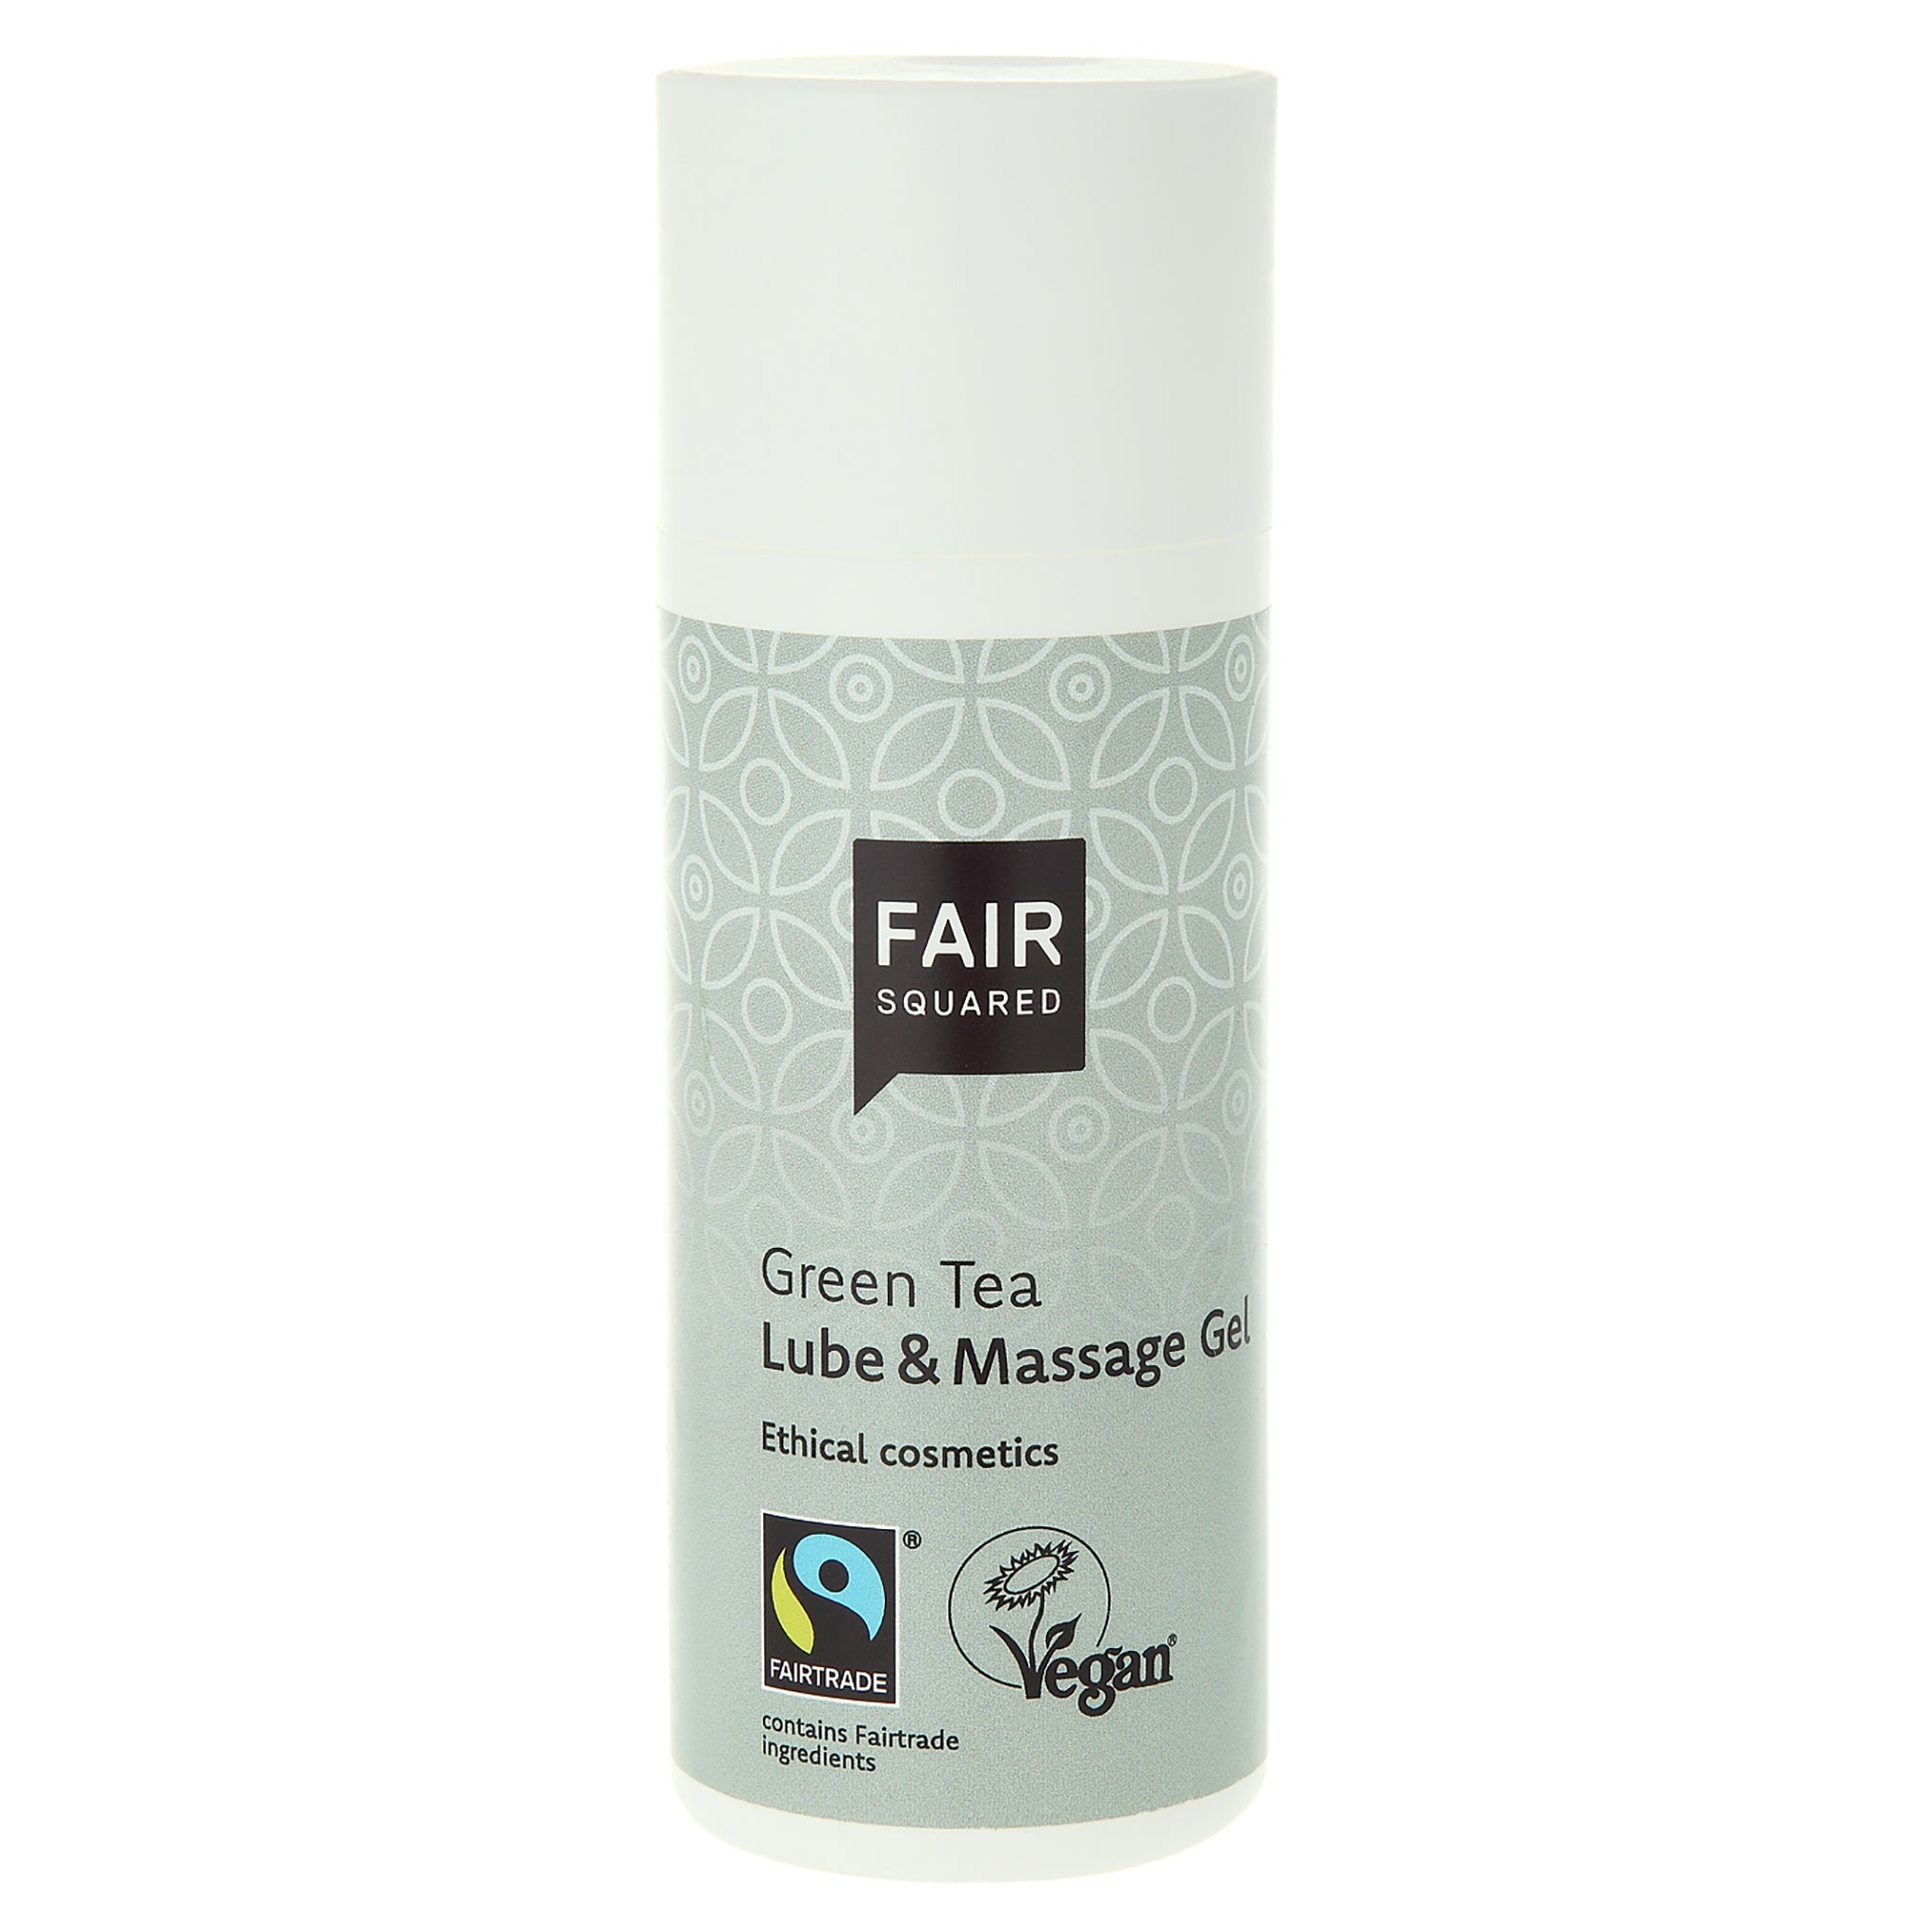 Green Tea Lube and Massage Gel